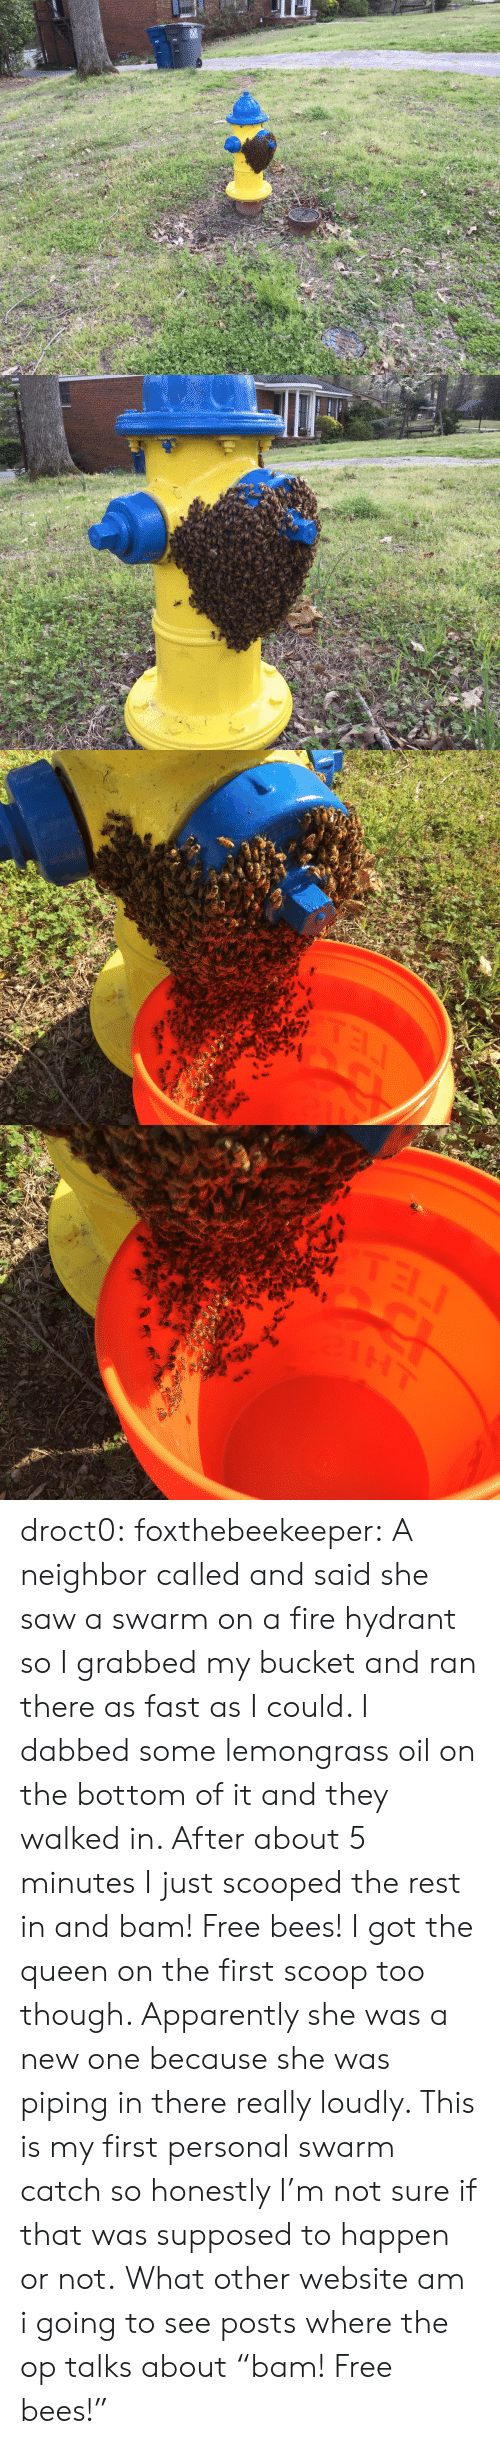 "Tel: TEL droct0: foxthebeekeeper:  A neighbor called and said she saw a swarm on a fire hydrant so I grabbed my bucket and ran there as fast as I could. I dabbed some lemongrass oil on the bottom of it and they walked in. After about 5 minutes I just scooped the rest in and bam! Free bees!  I got the queen on the first scoop too though. Apparently she was a new one because she was piping in there really loudly. This is my first personal swarm catch so honestly I'm not sure if that was supposed to happen or not.   What other website am i going to see posts where the op talks about ""bam! Free bees!"""